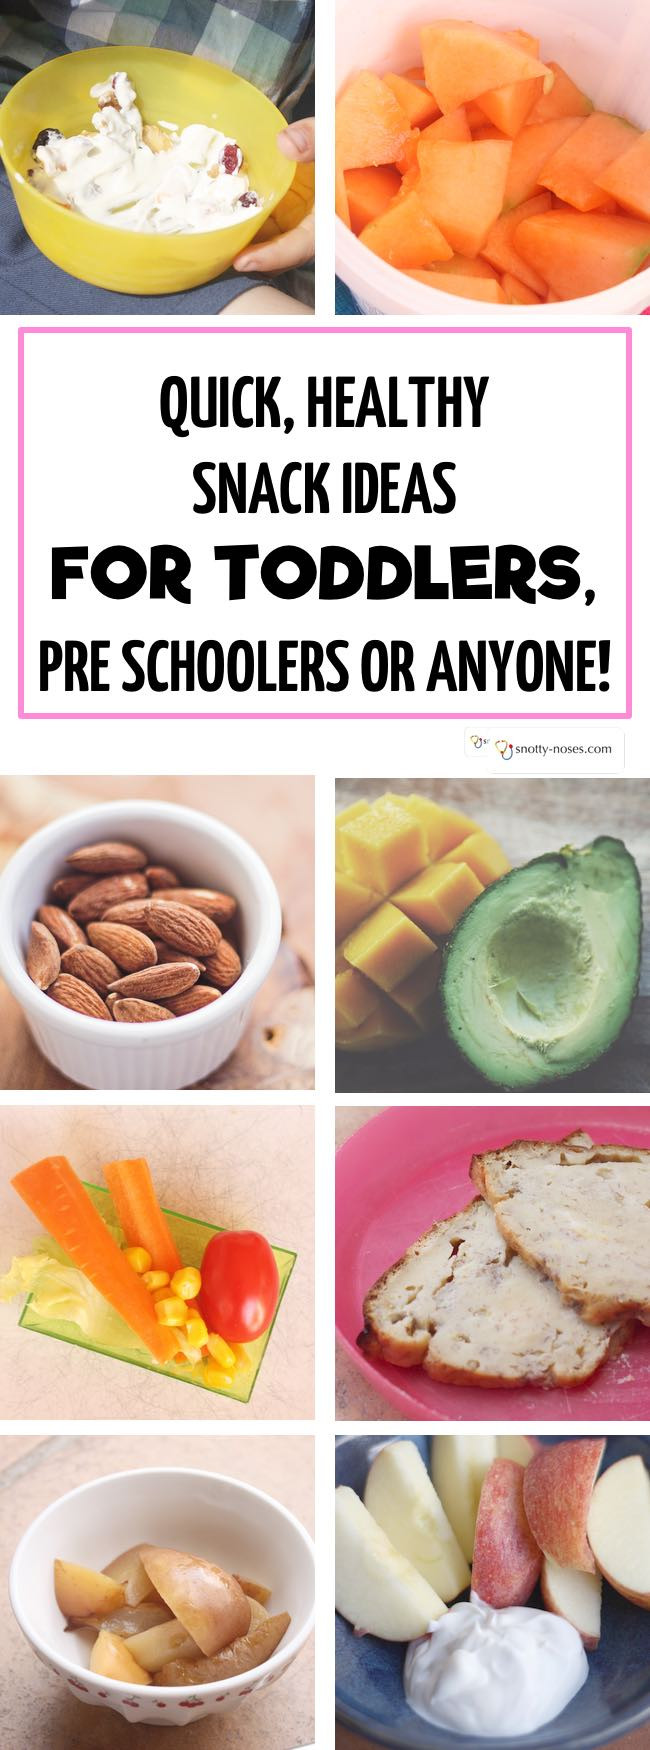 Easy Quick Healthy Snacks  Quick Healthy Snacks for Toddlers and Young Kids